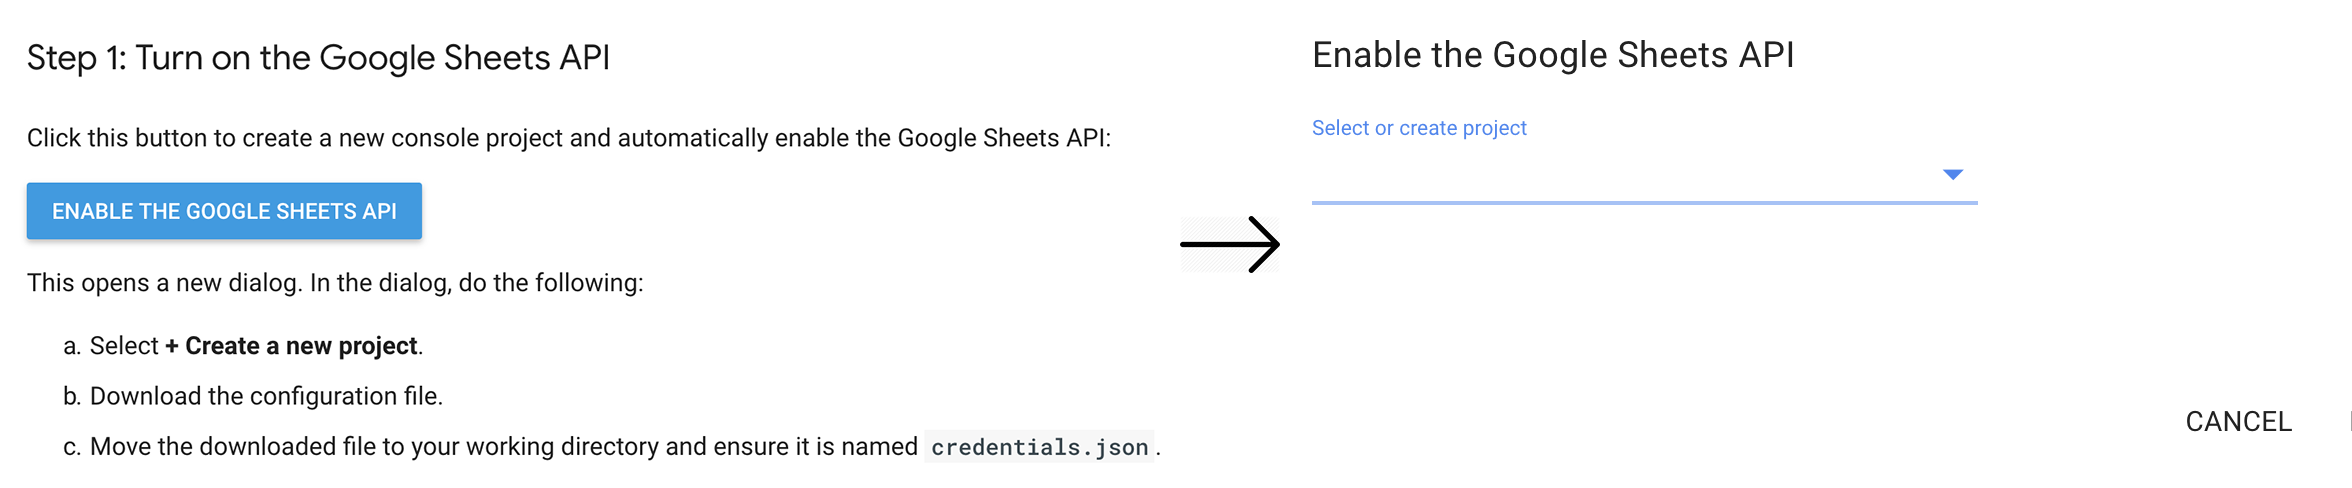 Serverless Function to Sync Data from a Database to Google